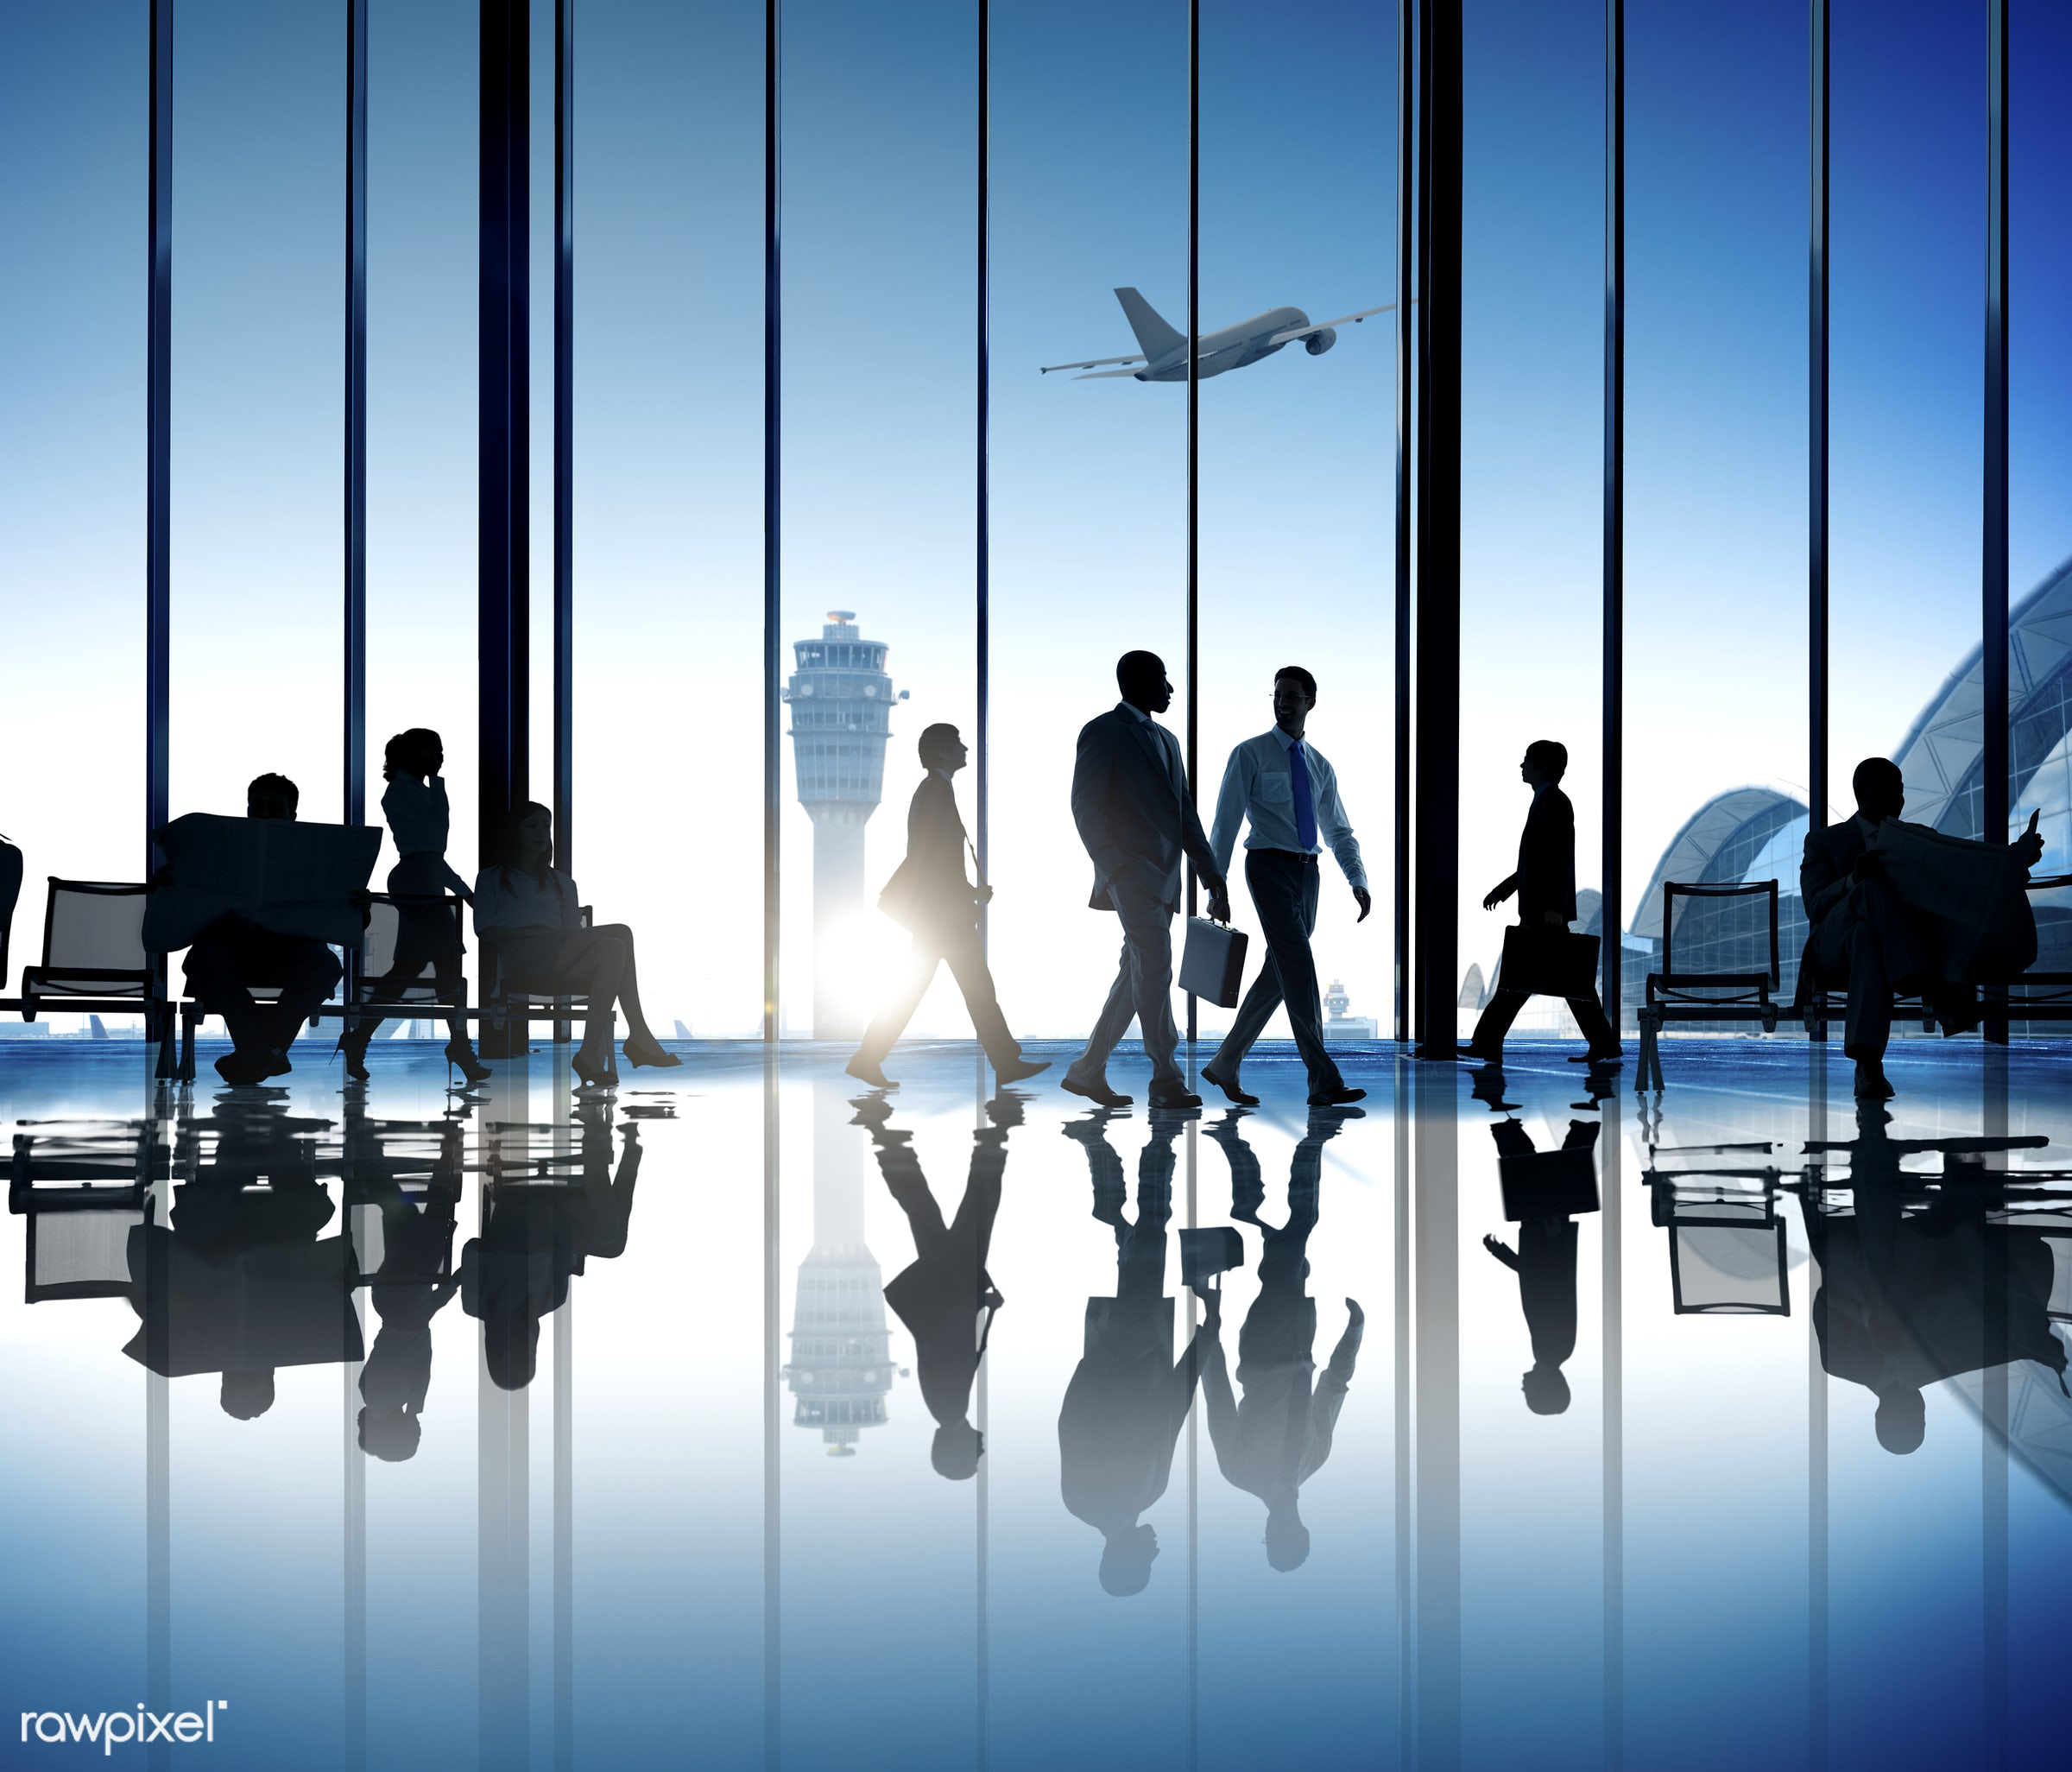 Corporate business travel - luggage, business travel, transportation, aircraft, airline, airplane, airport, business,...